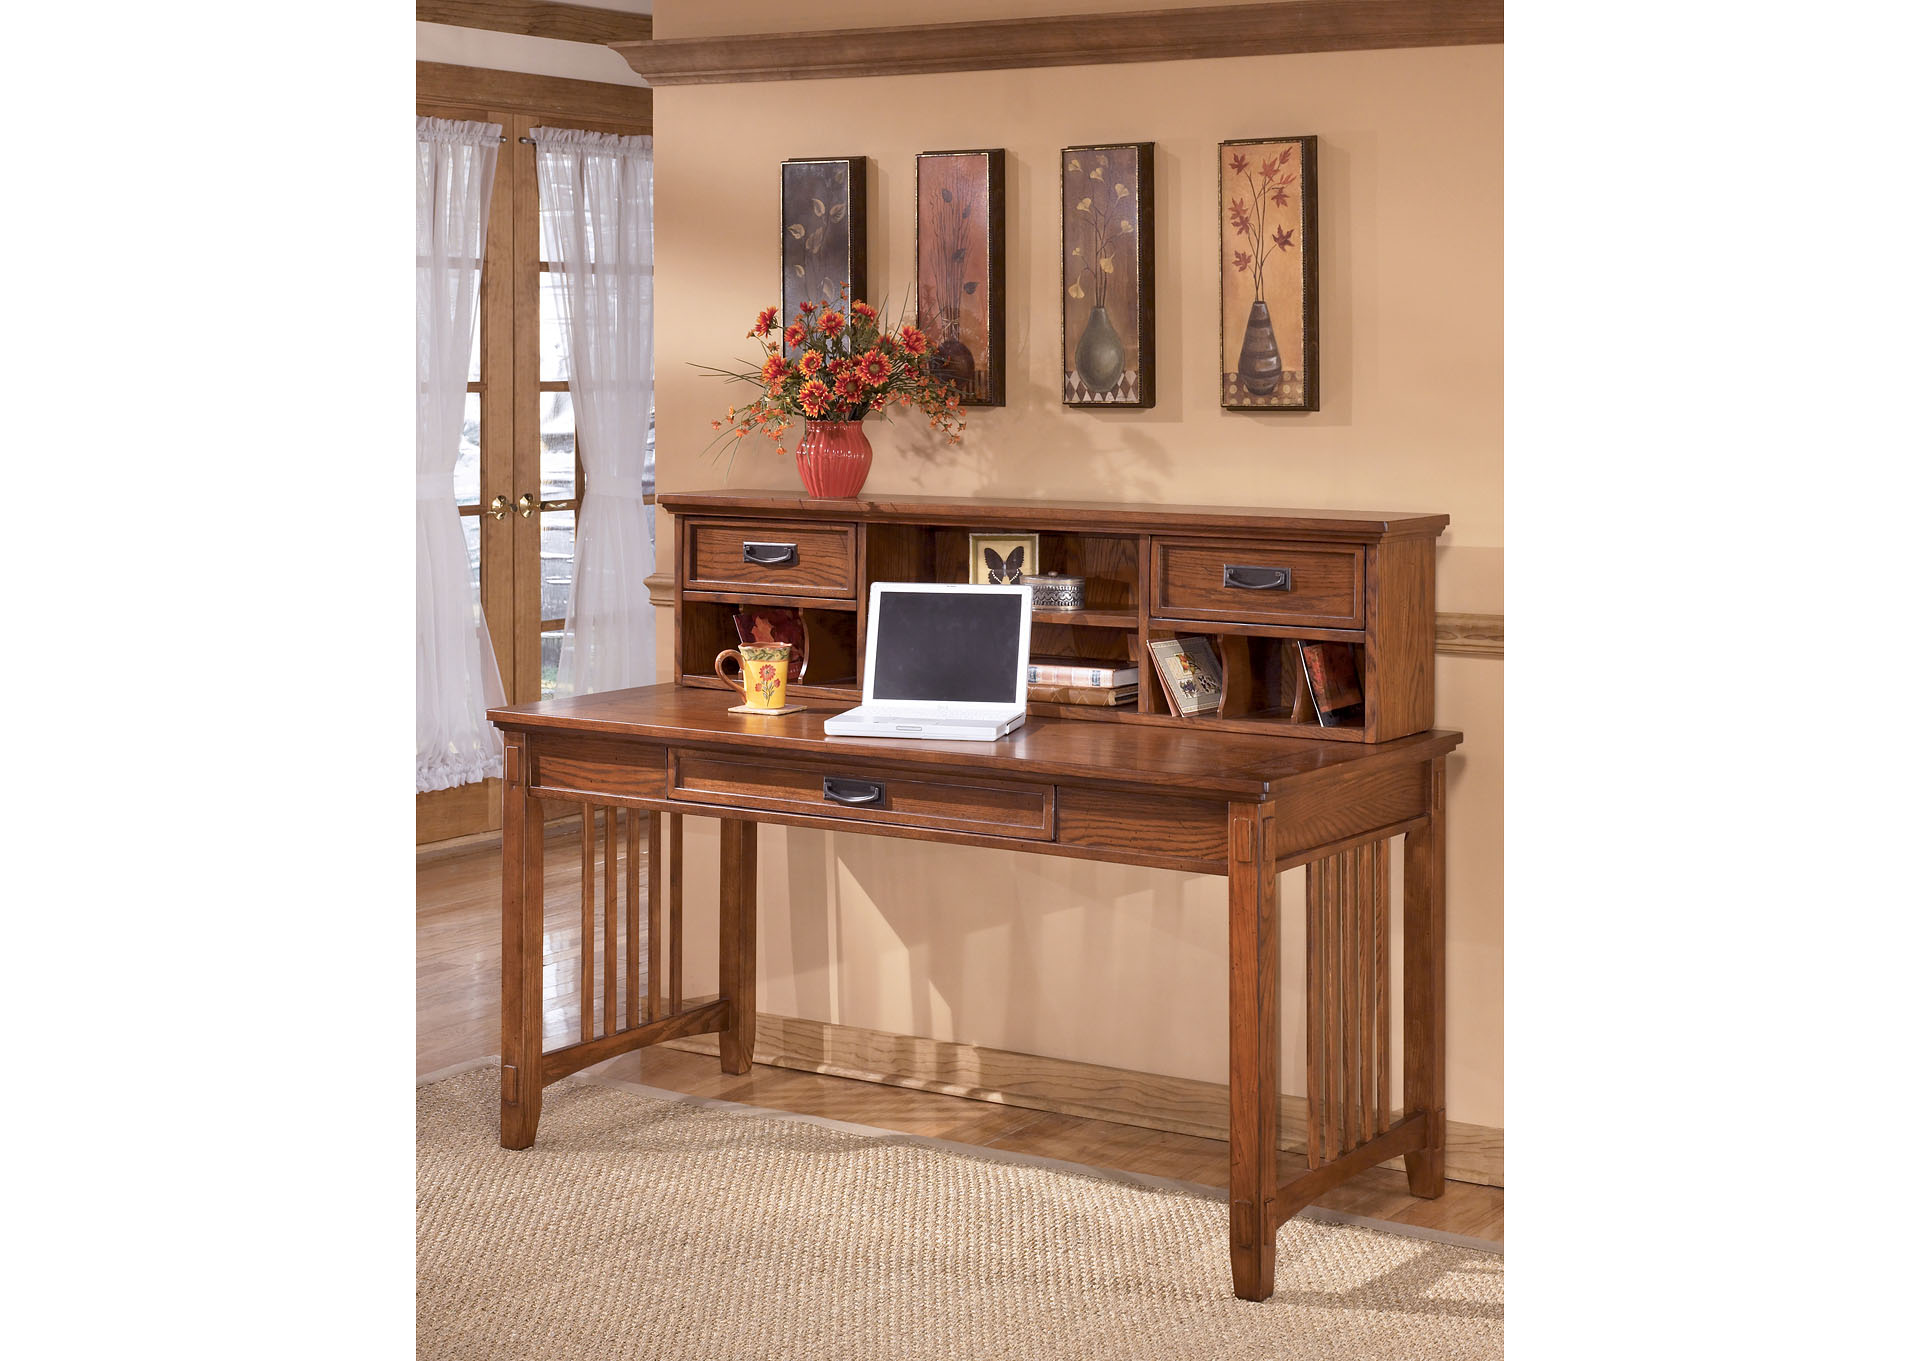 Cross Island Large Leg Desk & Low Hutch,ABF Signature Design by Ashley